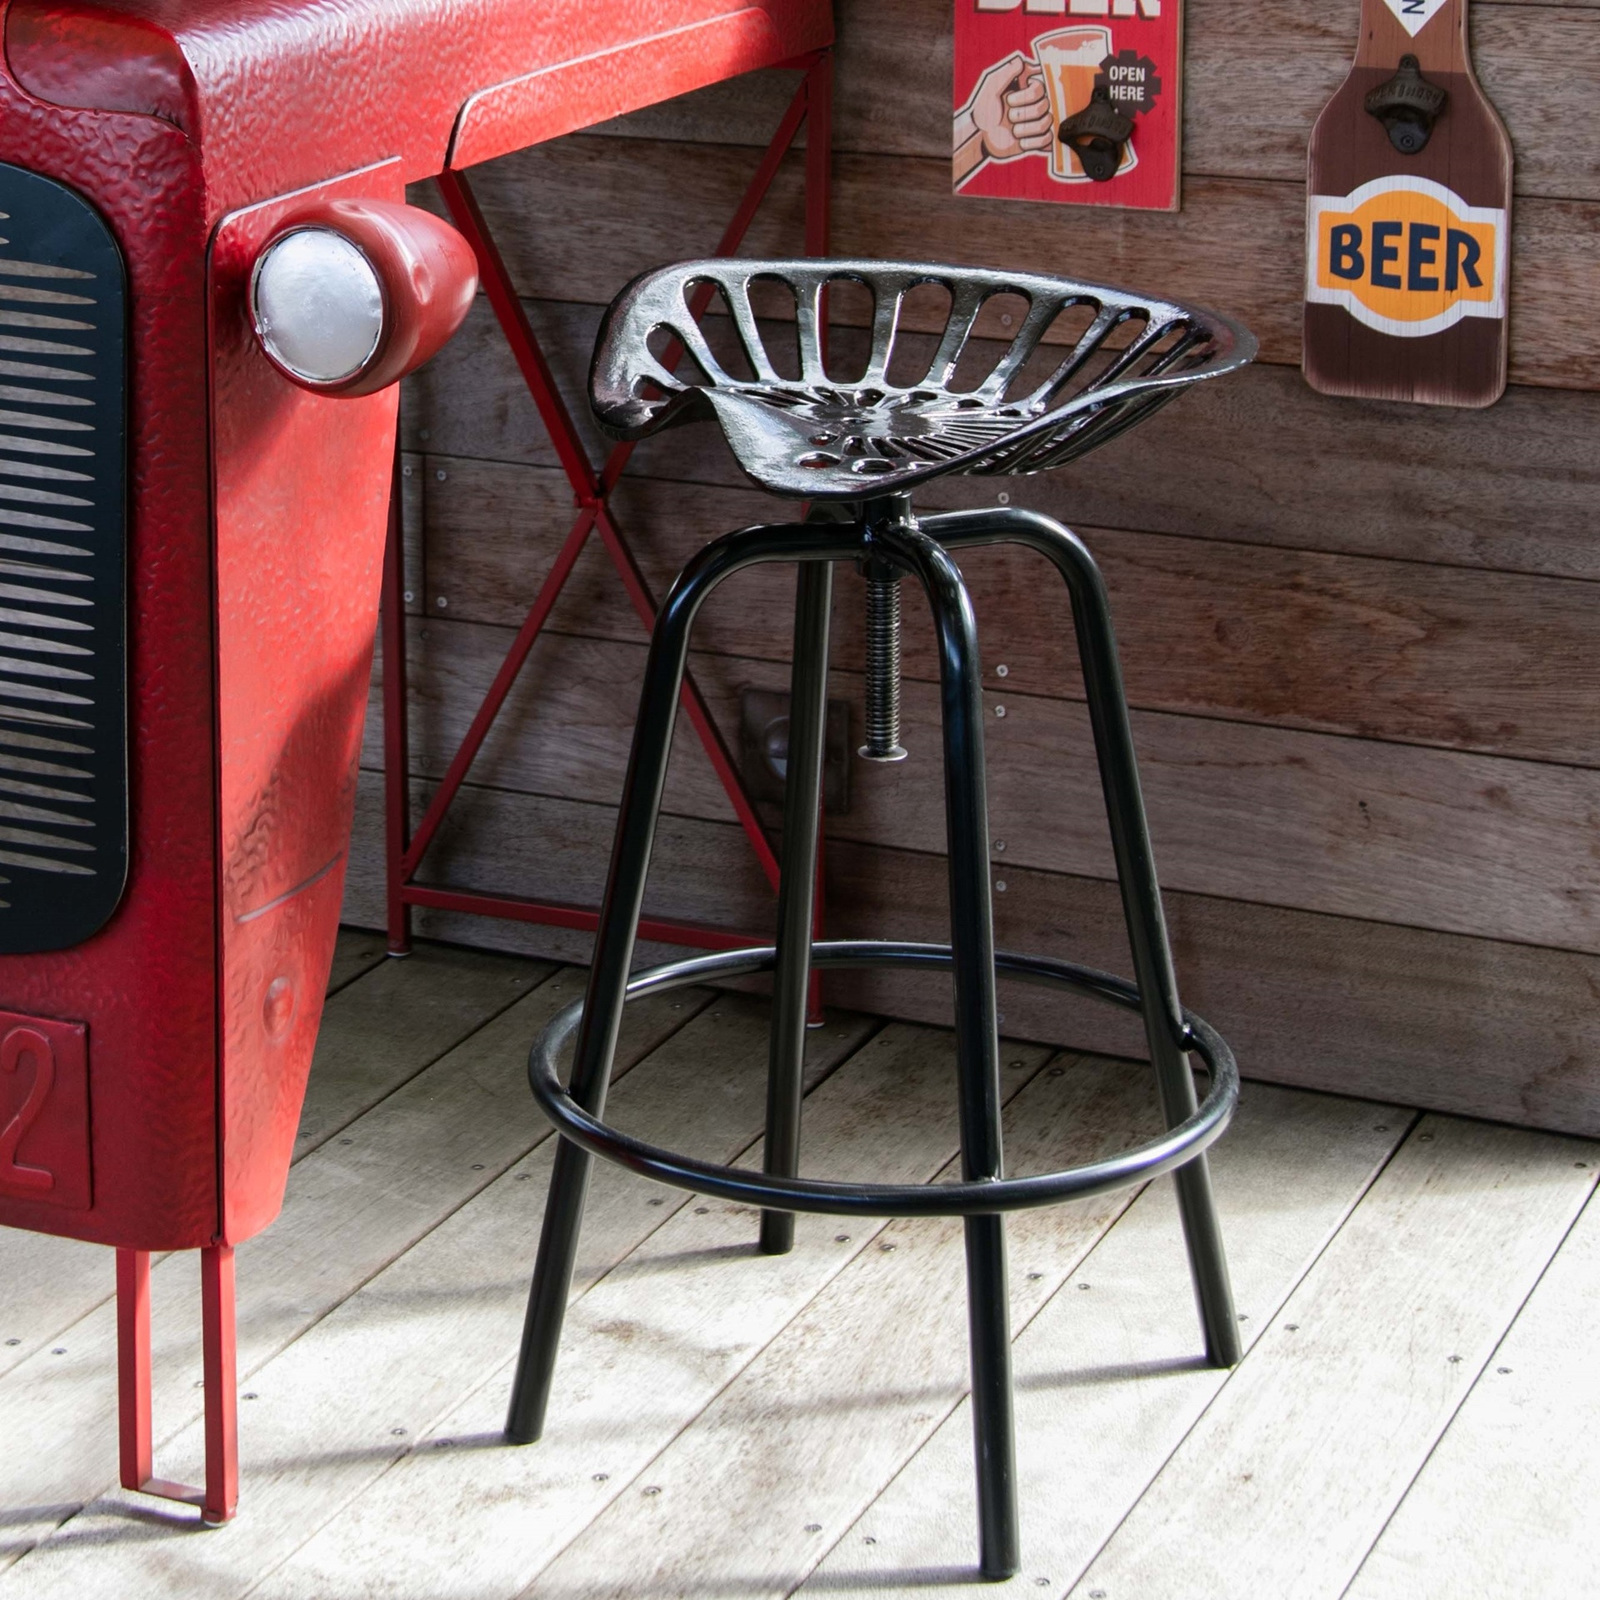 Tractor Seat Bar Stool Black Dapper And Co : tractor seat bar stool black from www.dapperandco.co.nz size 1600 x 1600 jpeg 805kB